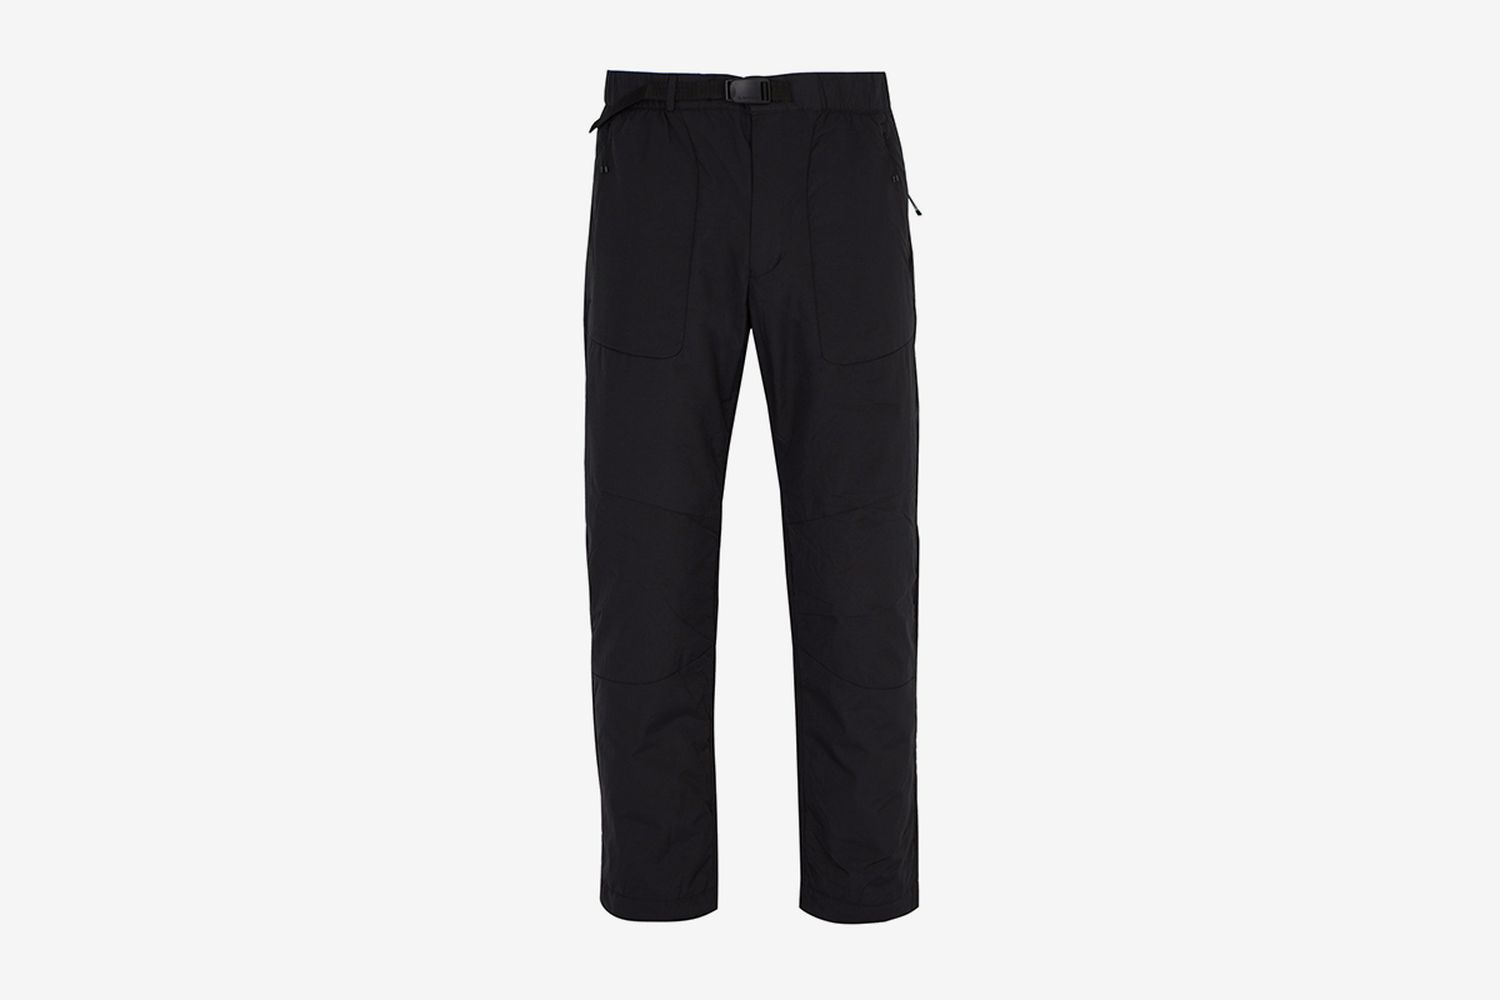 Octa Buckled Padded Trousers